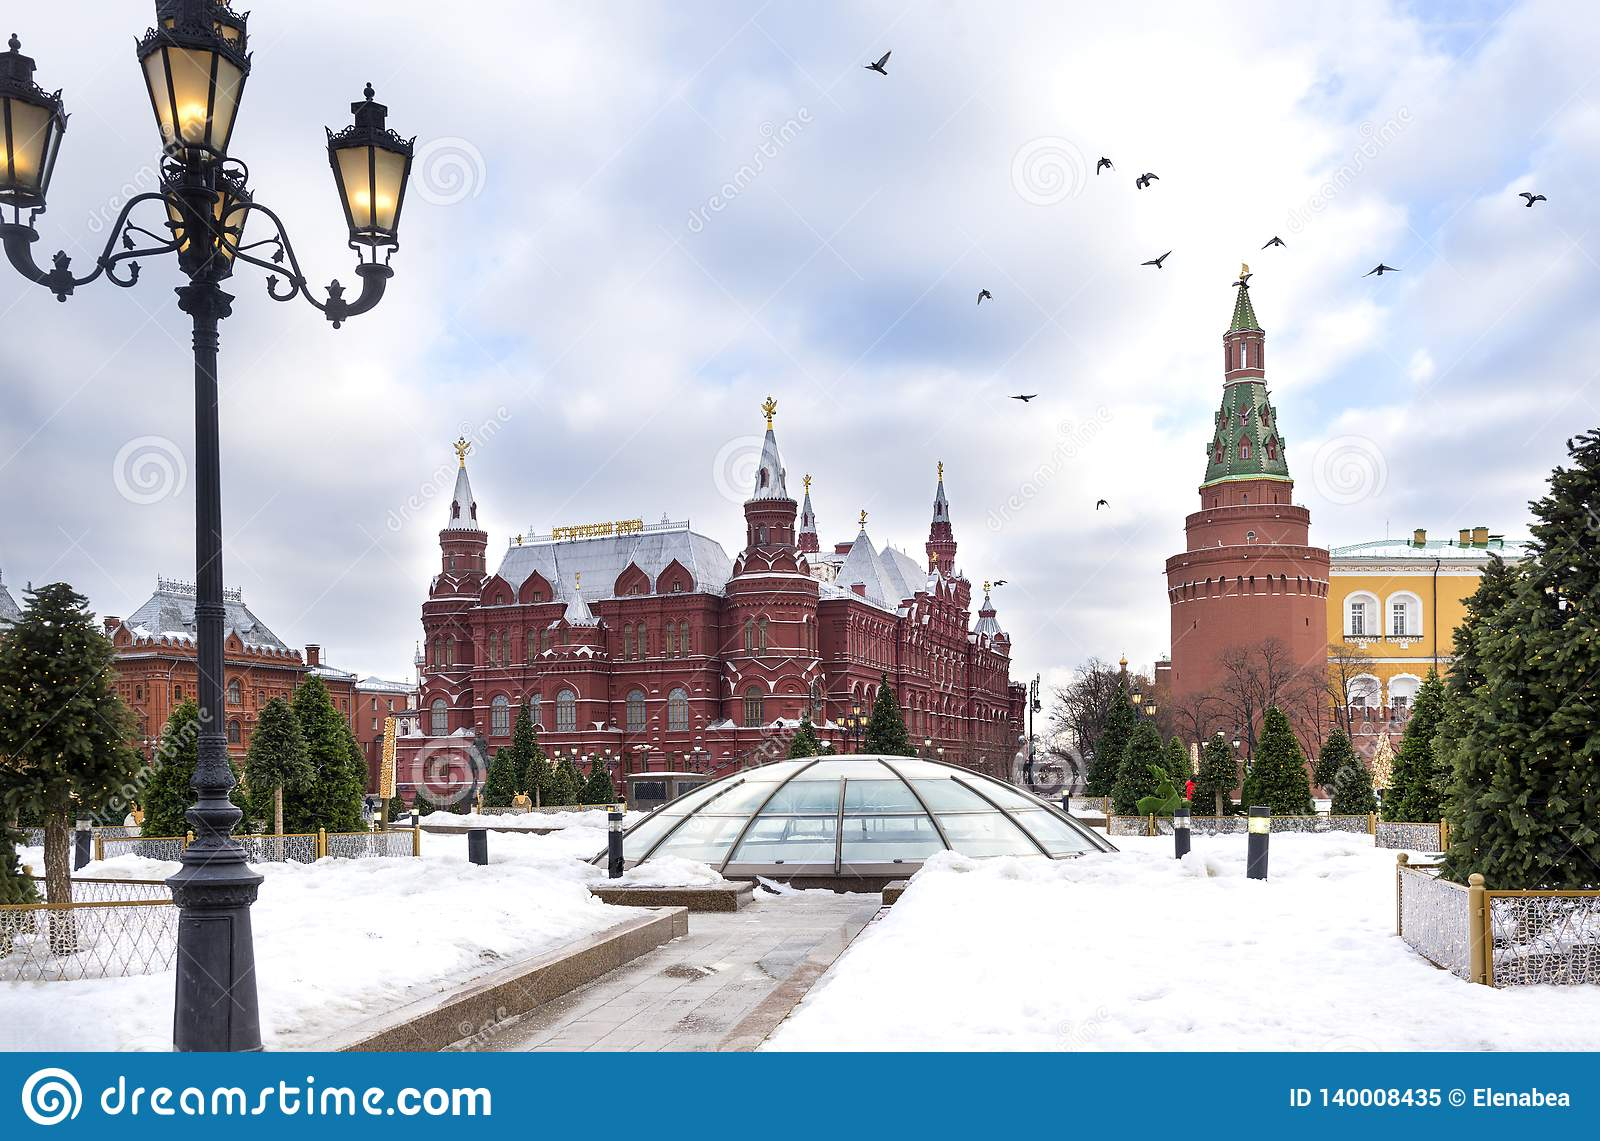 Moscow, Kremlin towers, historical Museum building, birds in the sky over red square, winter, Moscow Kremlin view